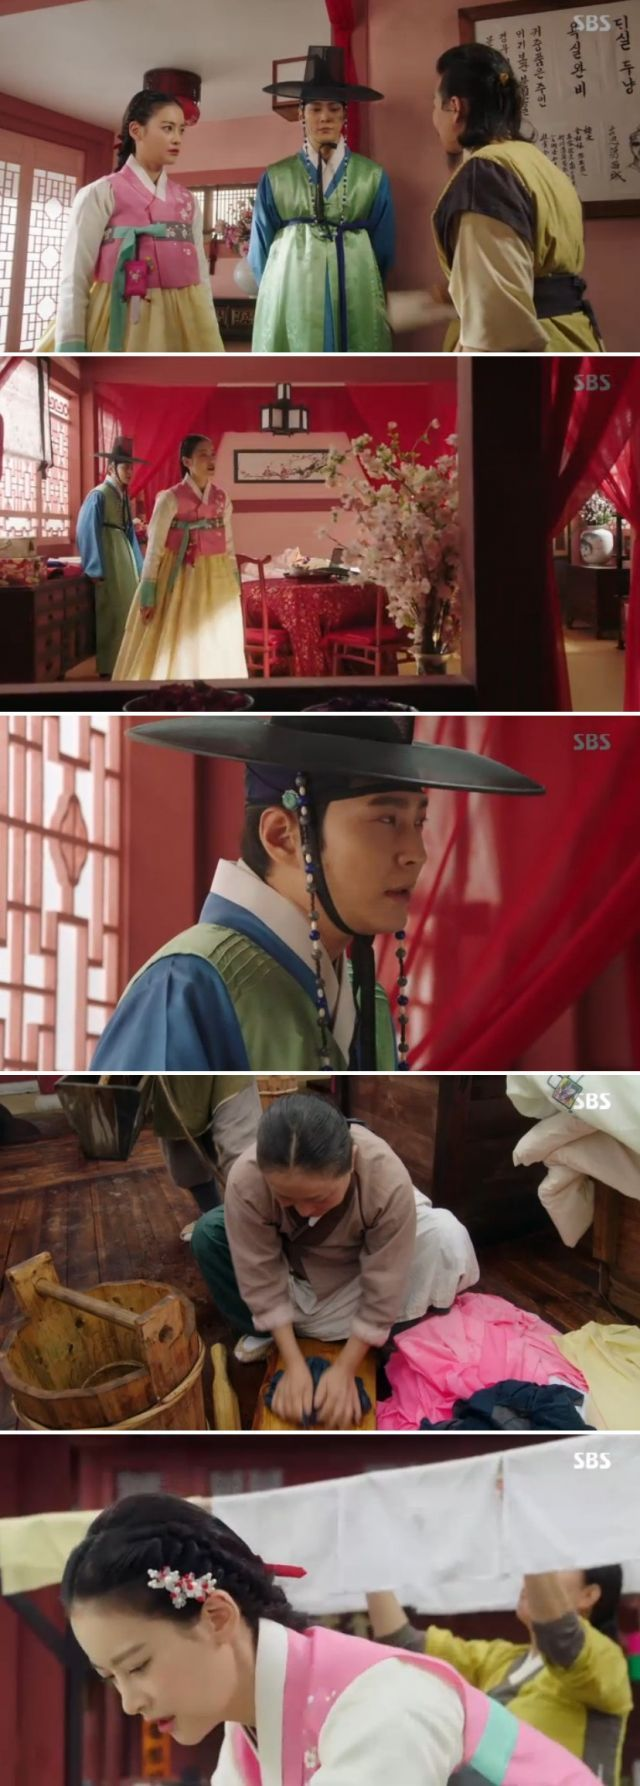 [Spoiler] Added episode 4 captures for the #kdrama 'My Sassy Girl - Drama'